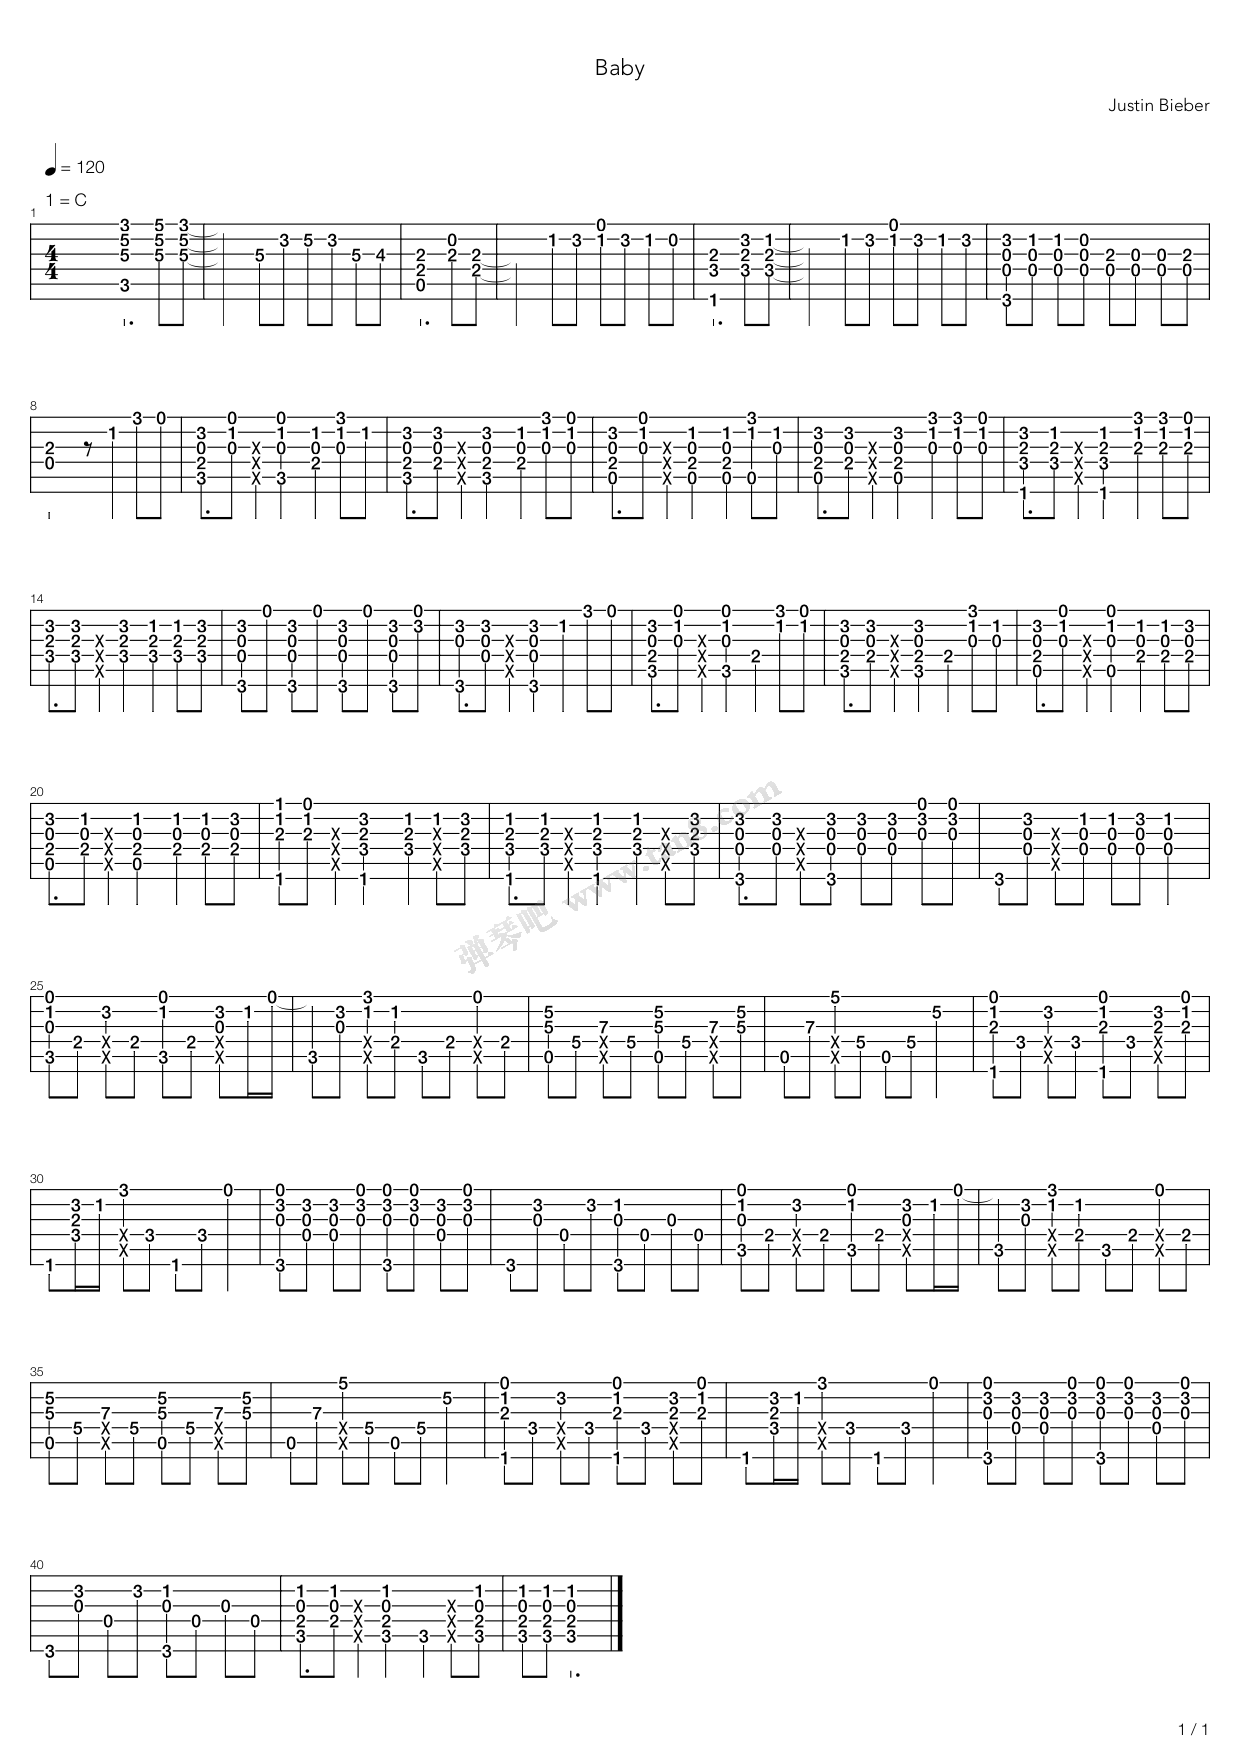 Baby By Justin Bieber Solo Guitar Tabs Chords Sheet Music Free